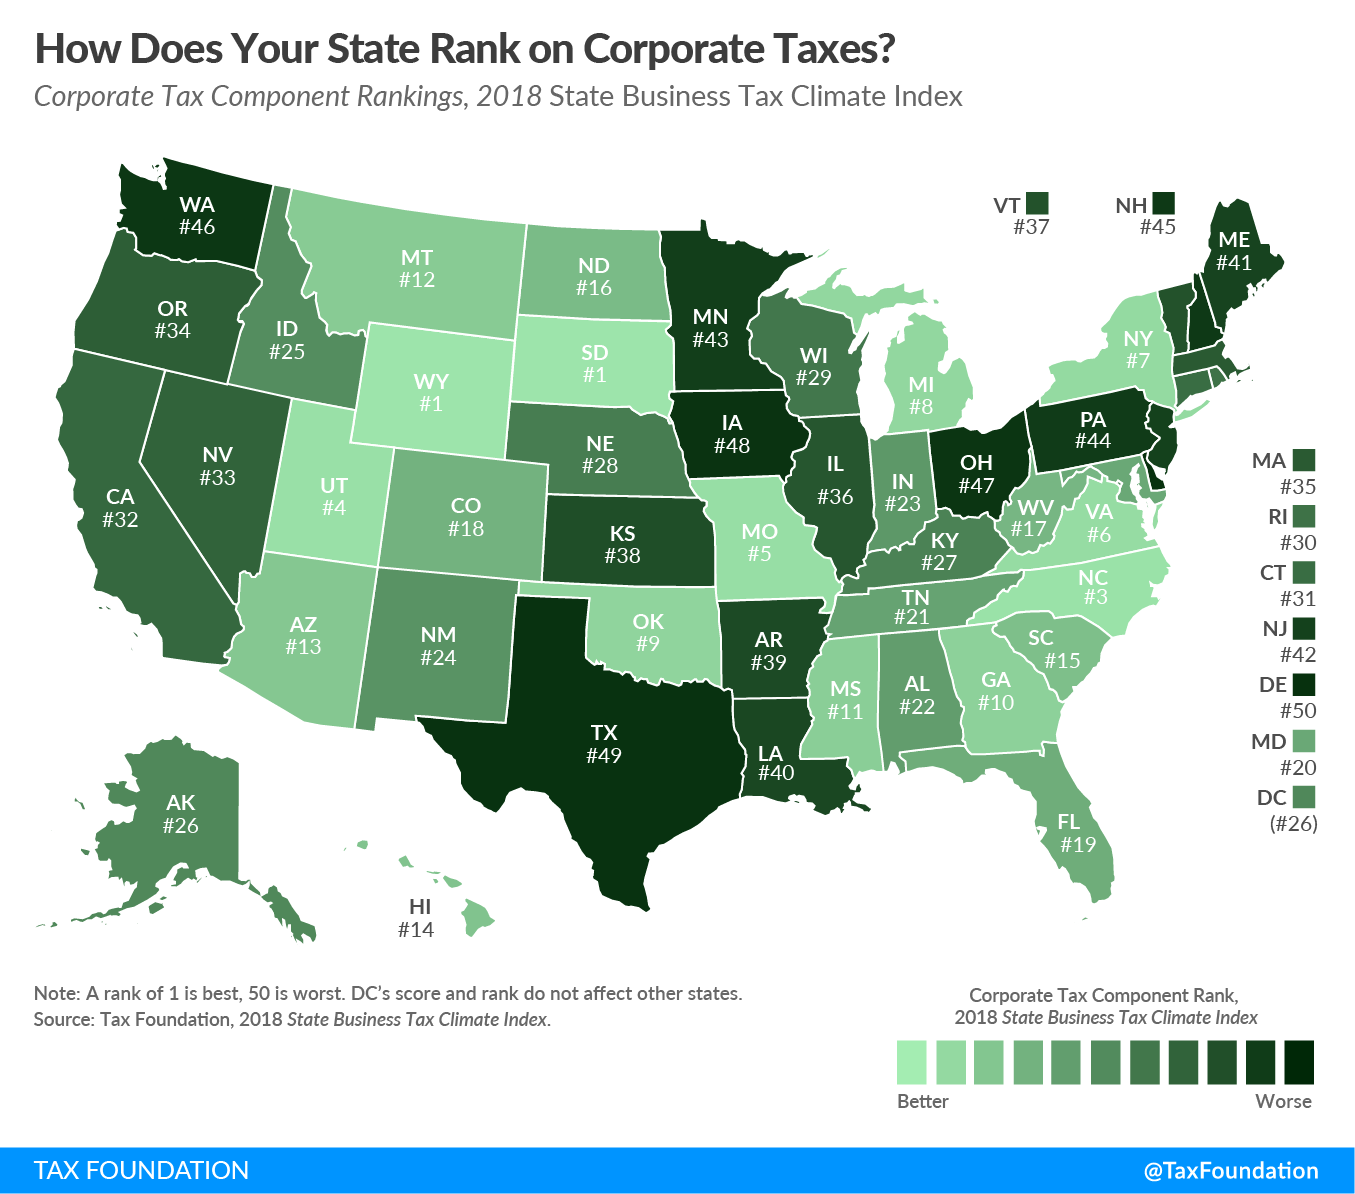 Corporate Tax Rank: 2018 State Business Tax Climate Index